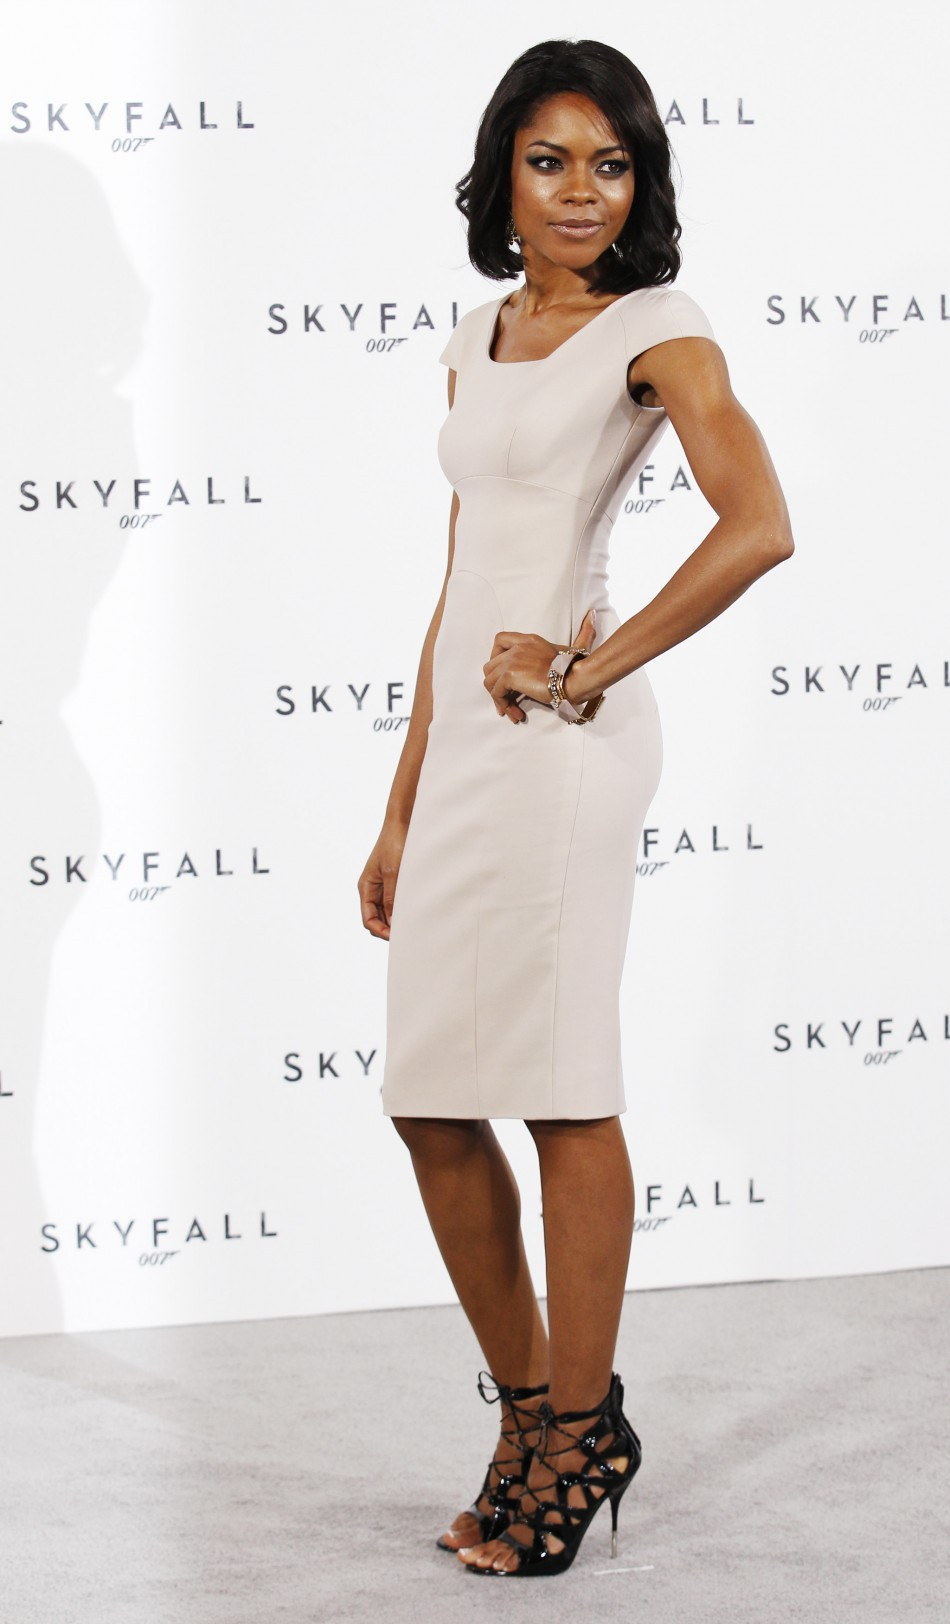 Actor Naomie Harris poses while launching the start of production of the new James Bond film quotSkyFallquot at a restaurant in London